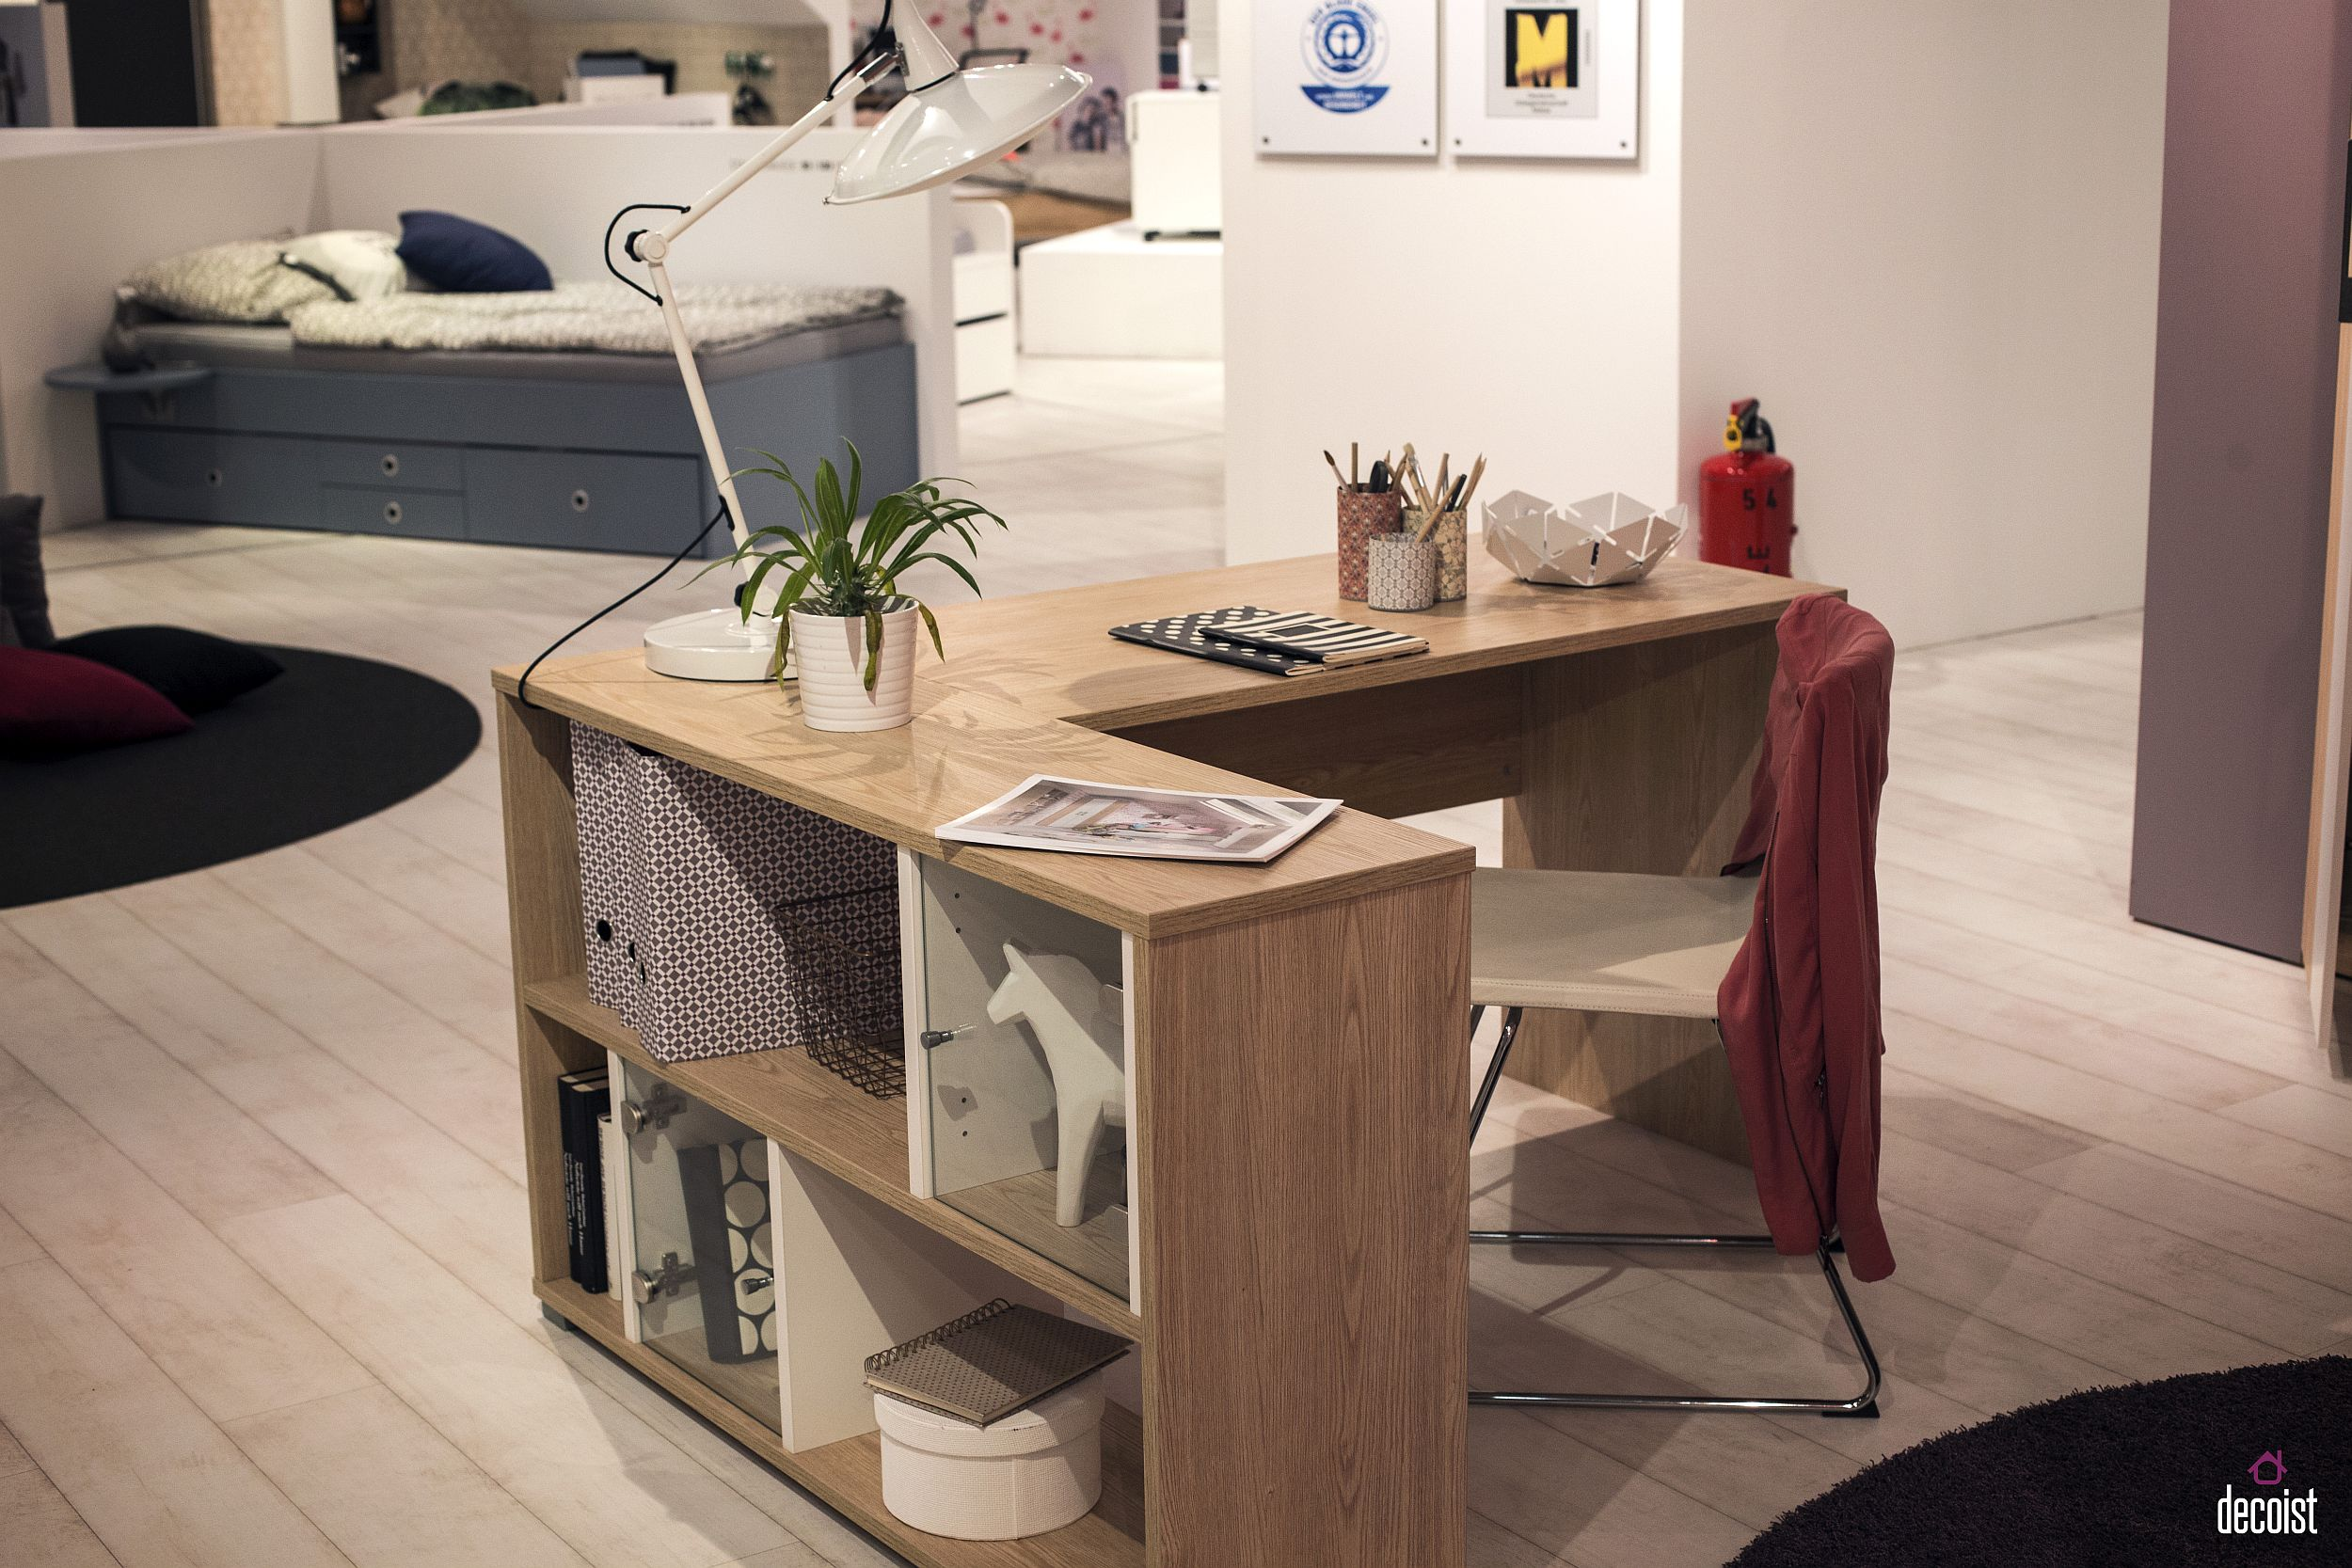 Angular shape of the kids' work desk makes it a perfect choice for the bedroom corner